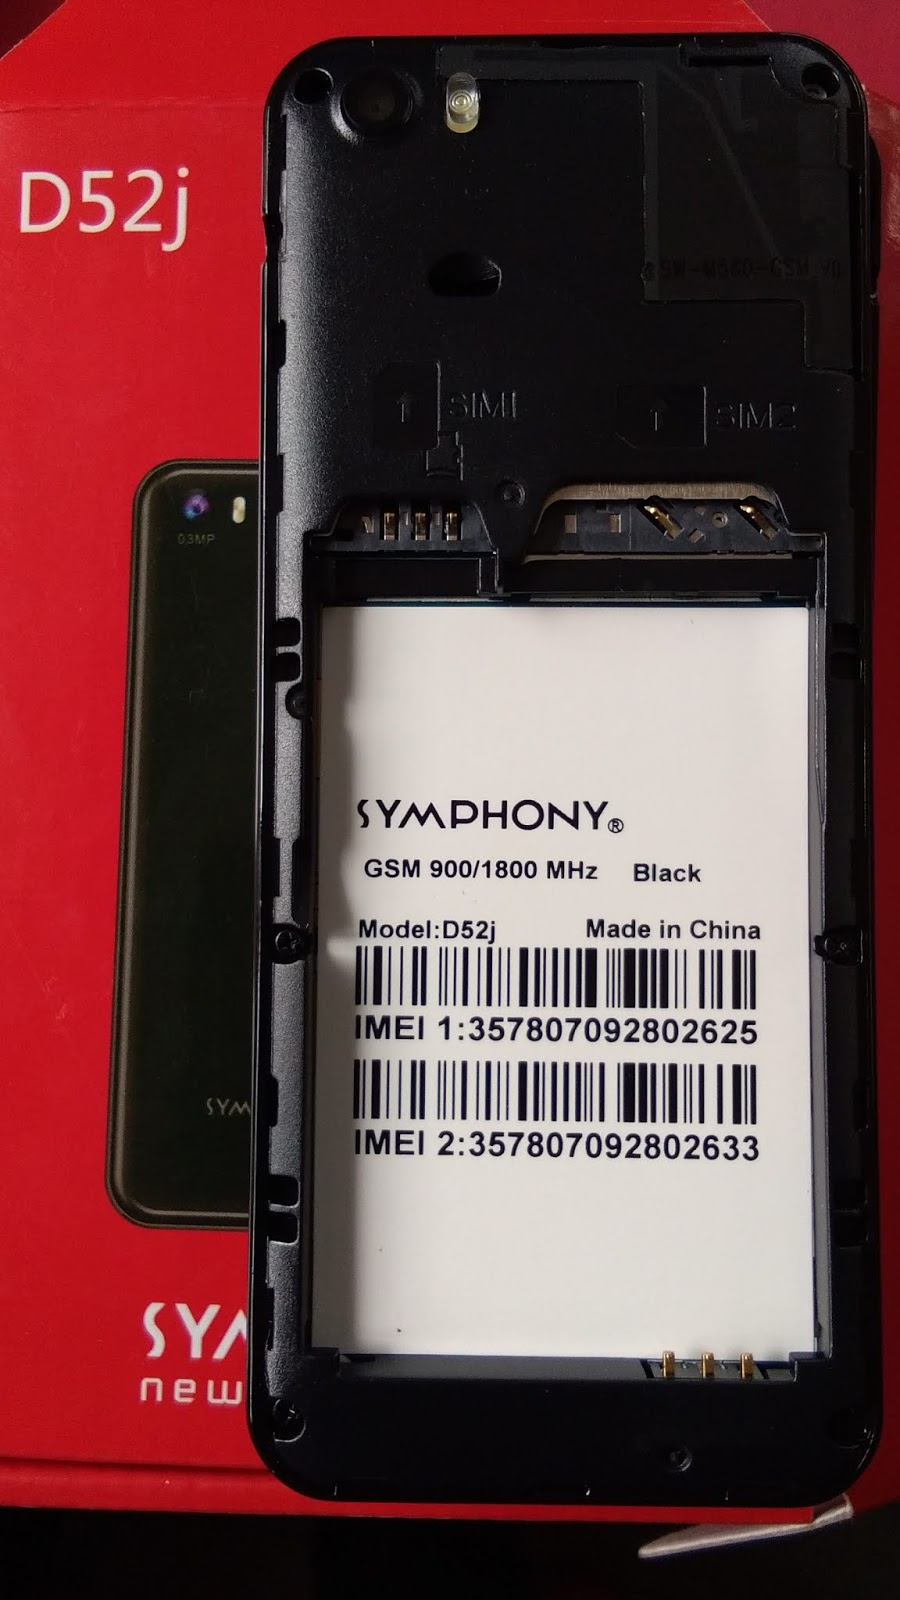 SYMPHONY D52J FLASH FILE MT6260 FREE DOWNLOAD 100% TESTED - Frp Expart